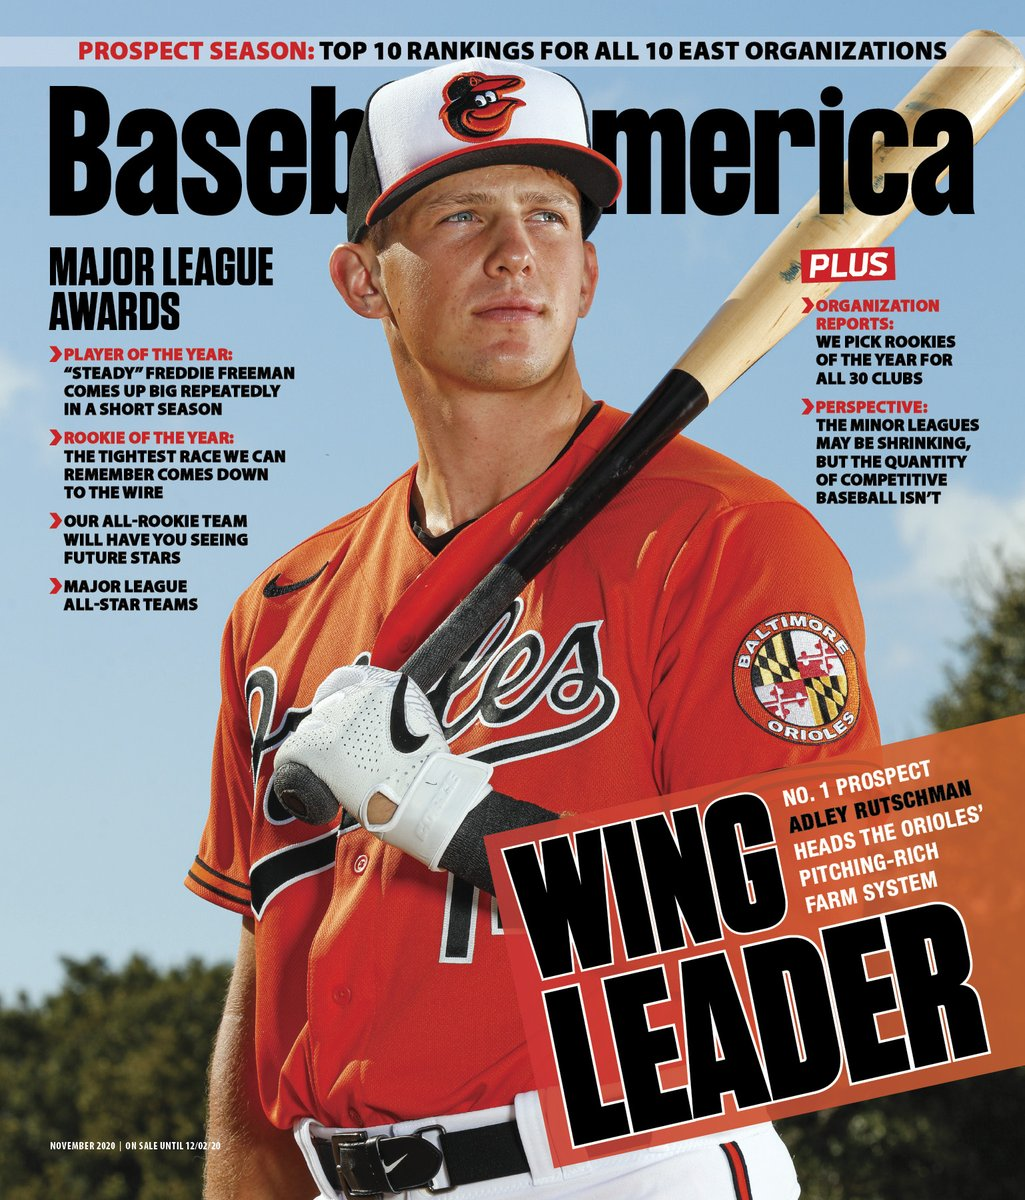 New cover athlete 😎  @Orioles top prospect Adley Rutschman returns to the cover of Baseball America, this time for our November issue.   Subscribers who have the app get early access 👀  Download here: https://t.co/OkJBVSo5wS https://t.co/5kOjS9LXMj